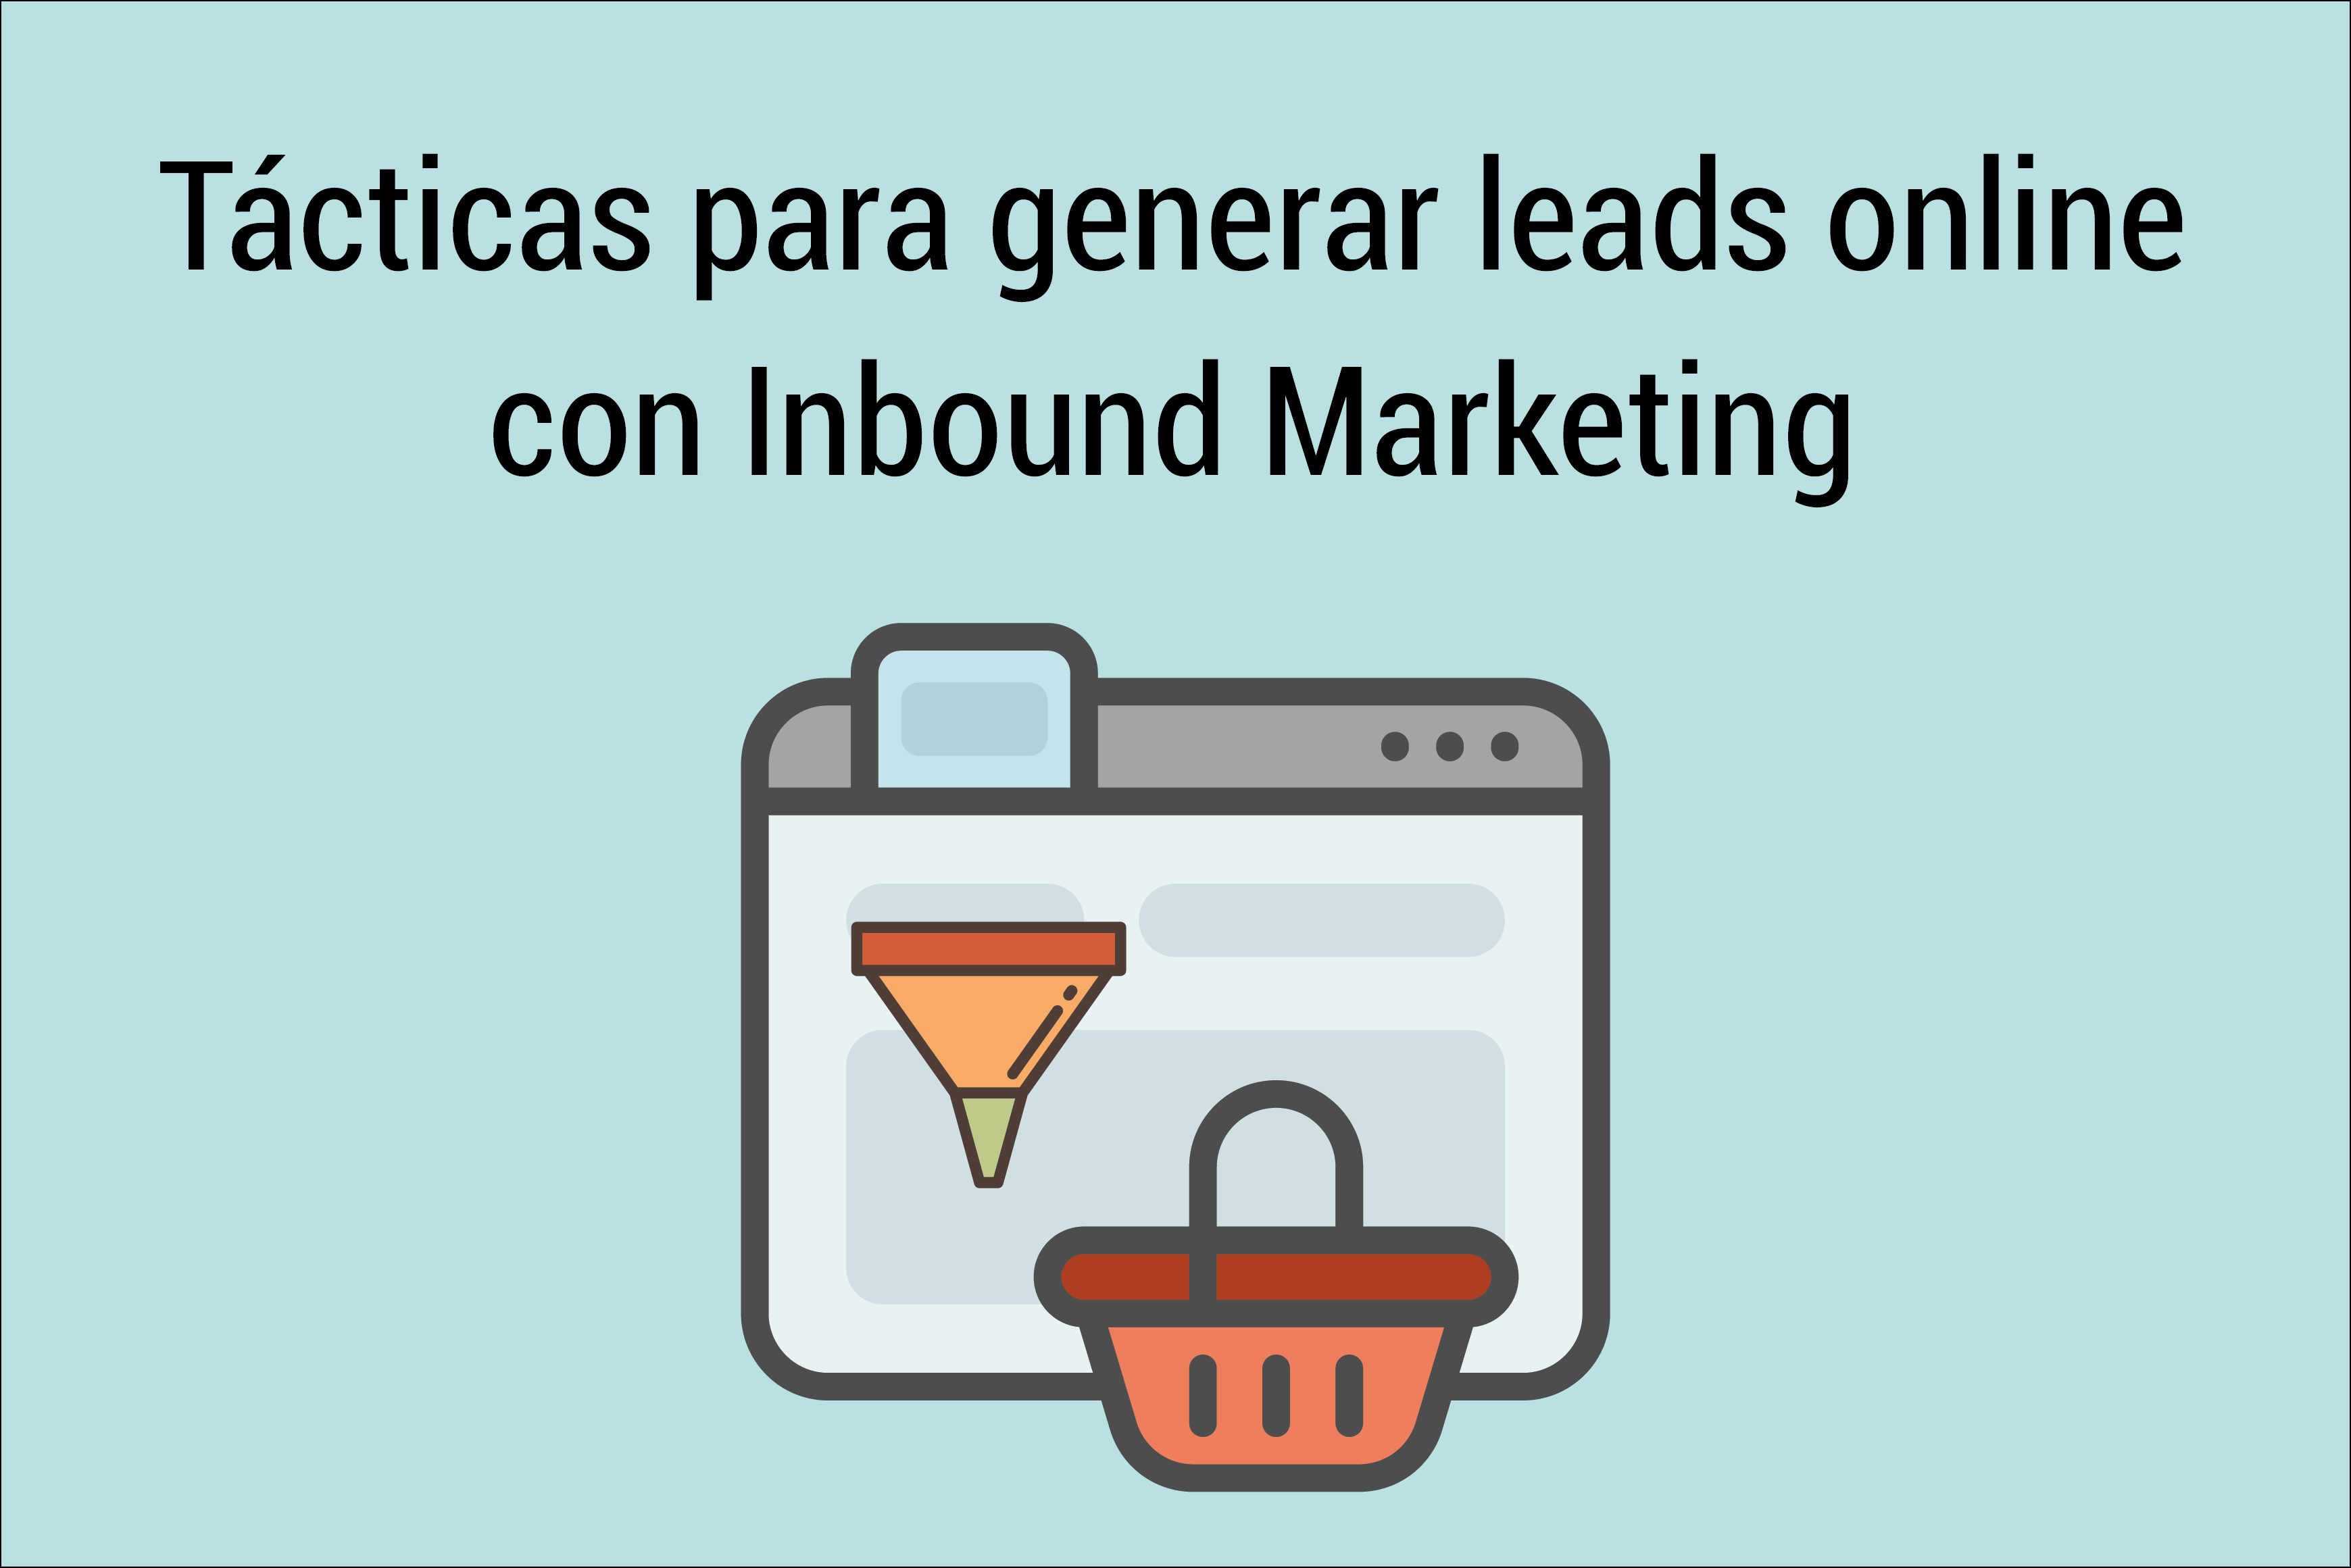 generar leads online con inbound marketing